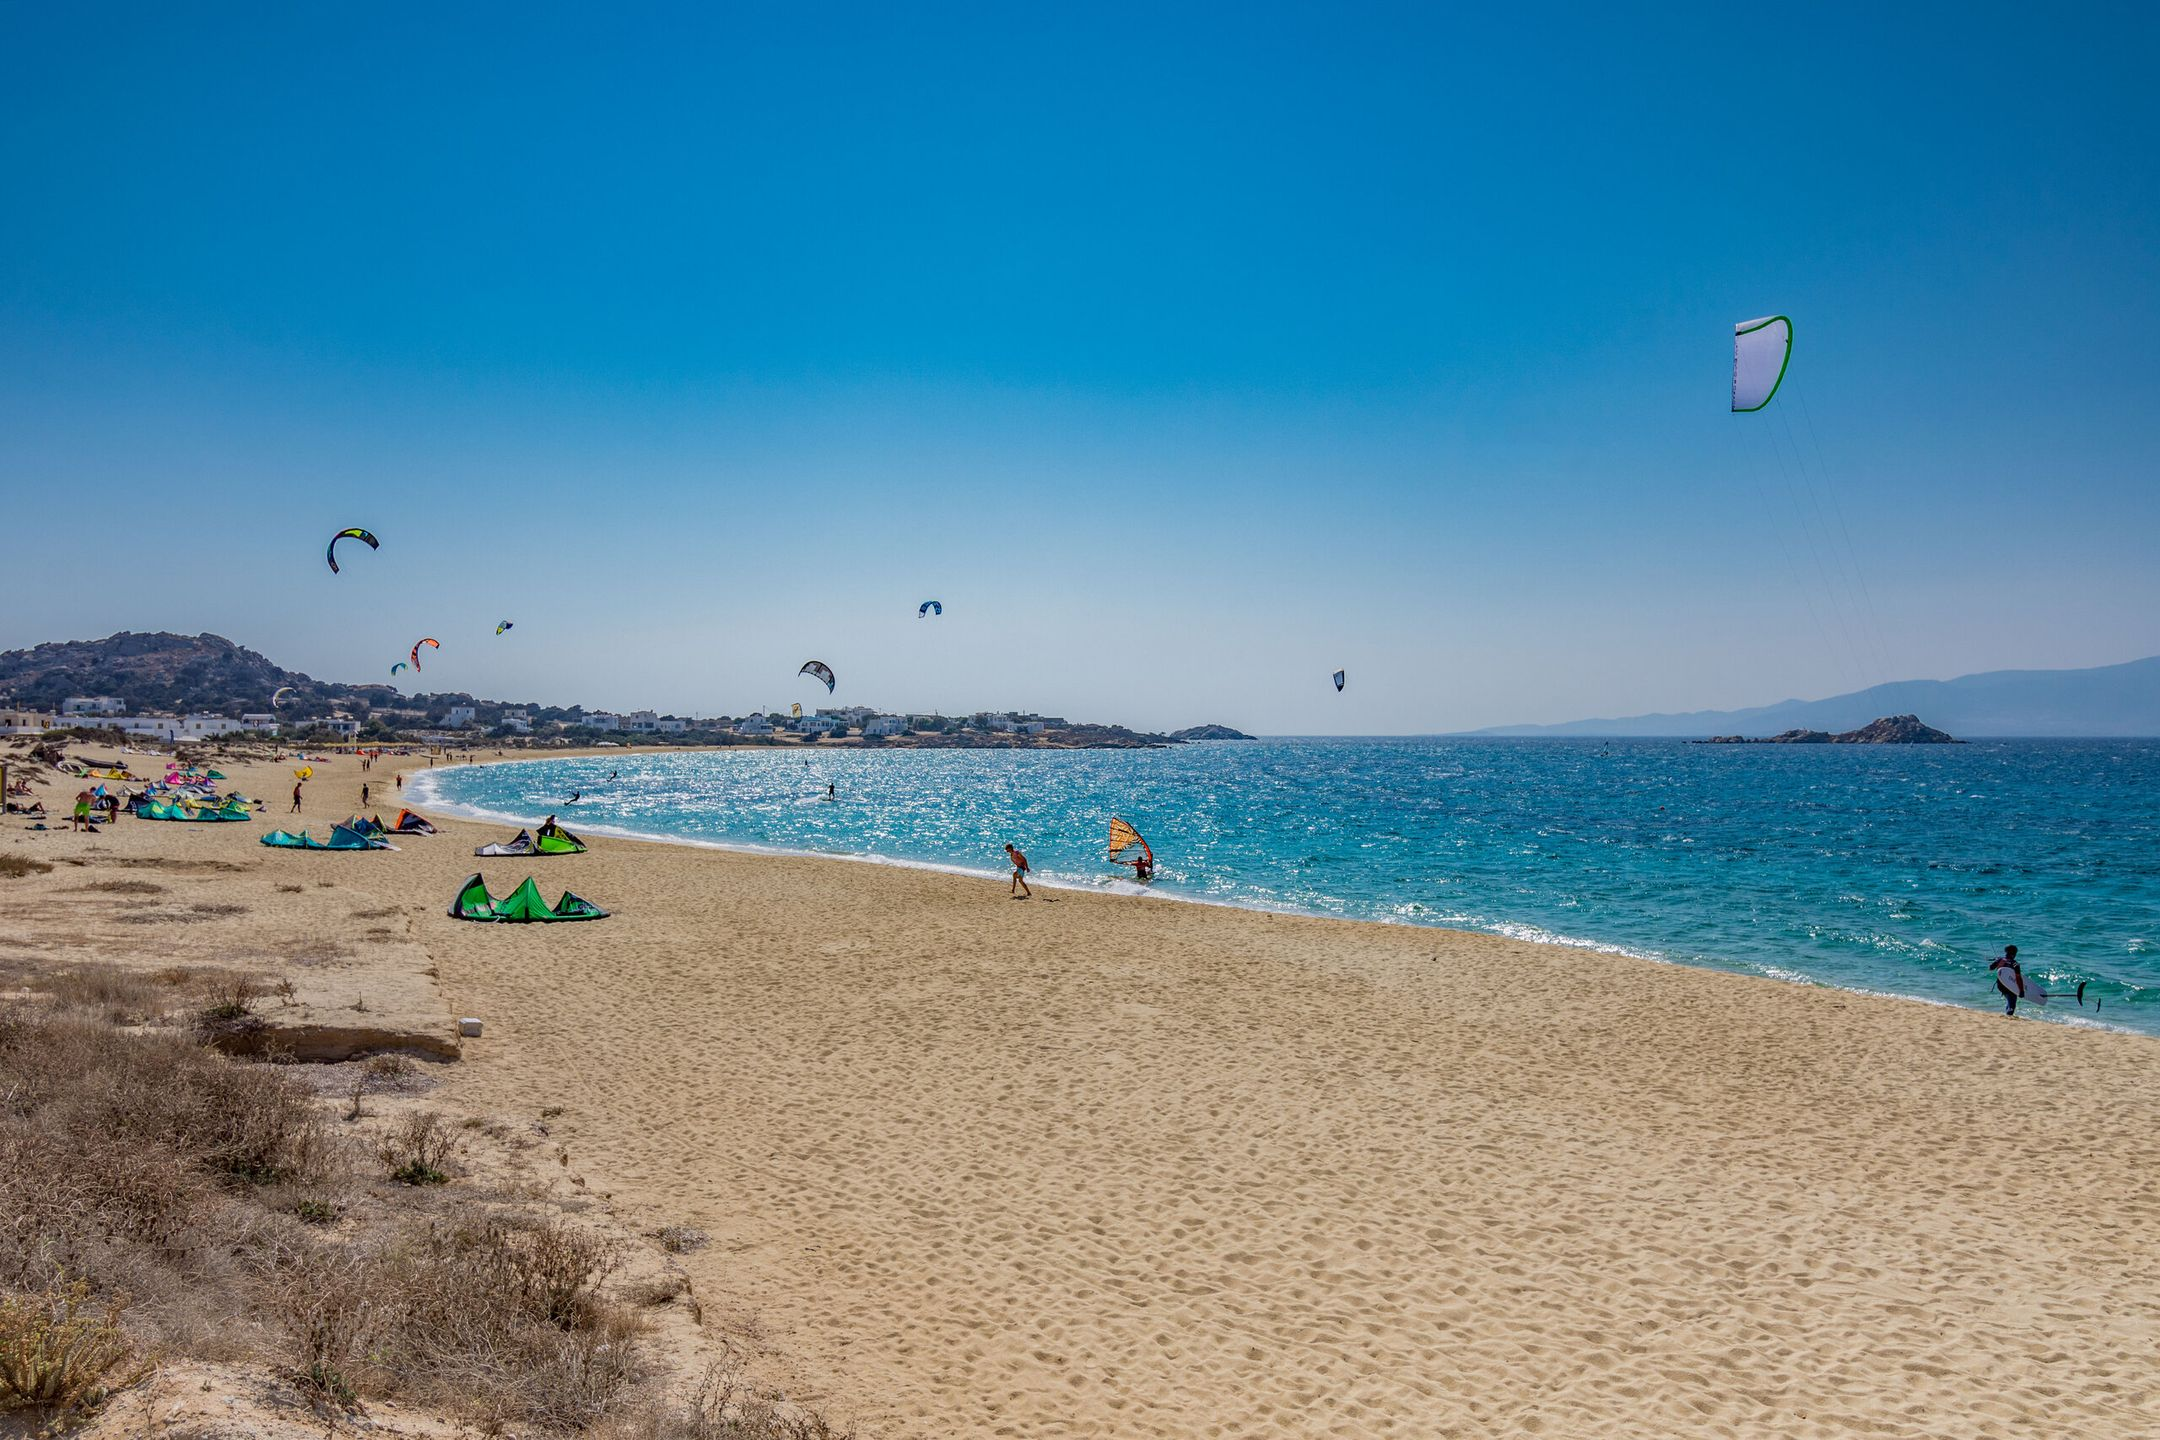 kitesurfing Greece kitespot Naxos ripatrip travel big